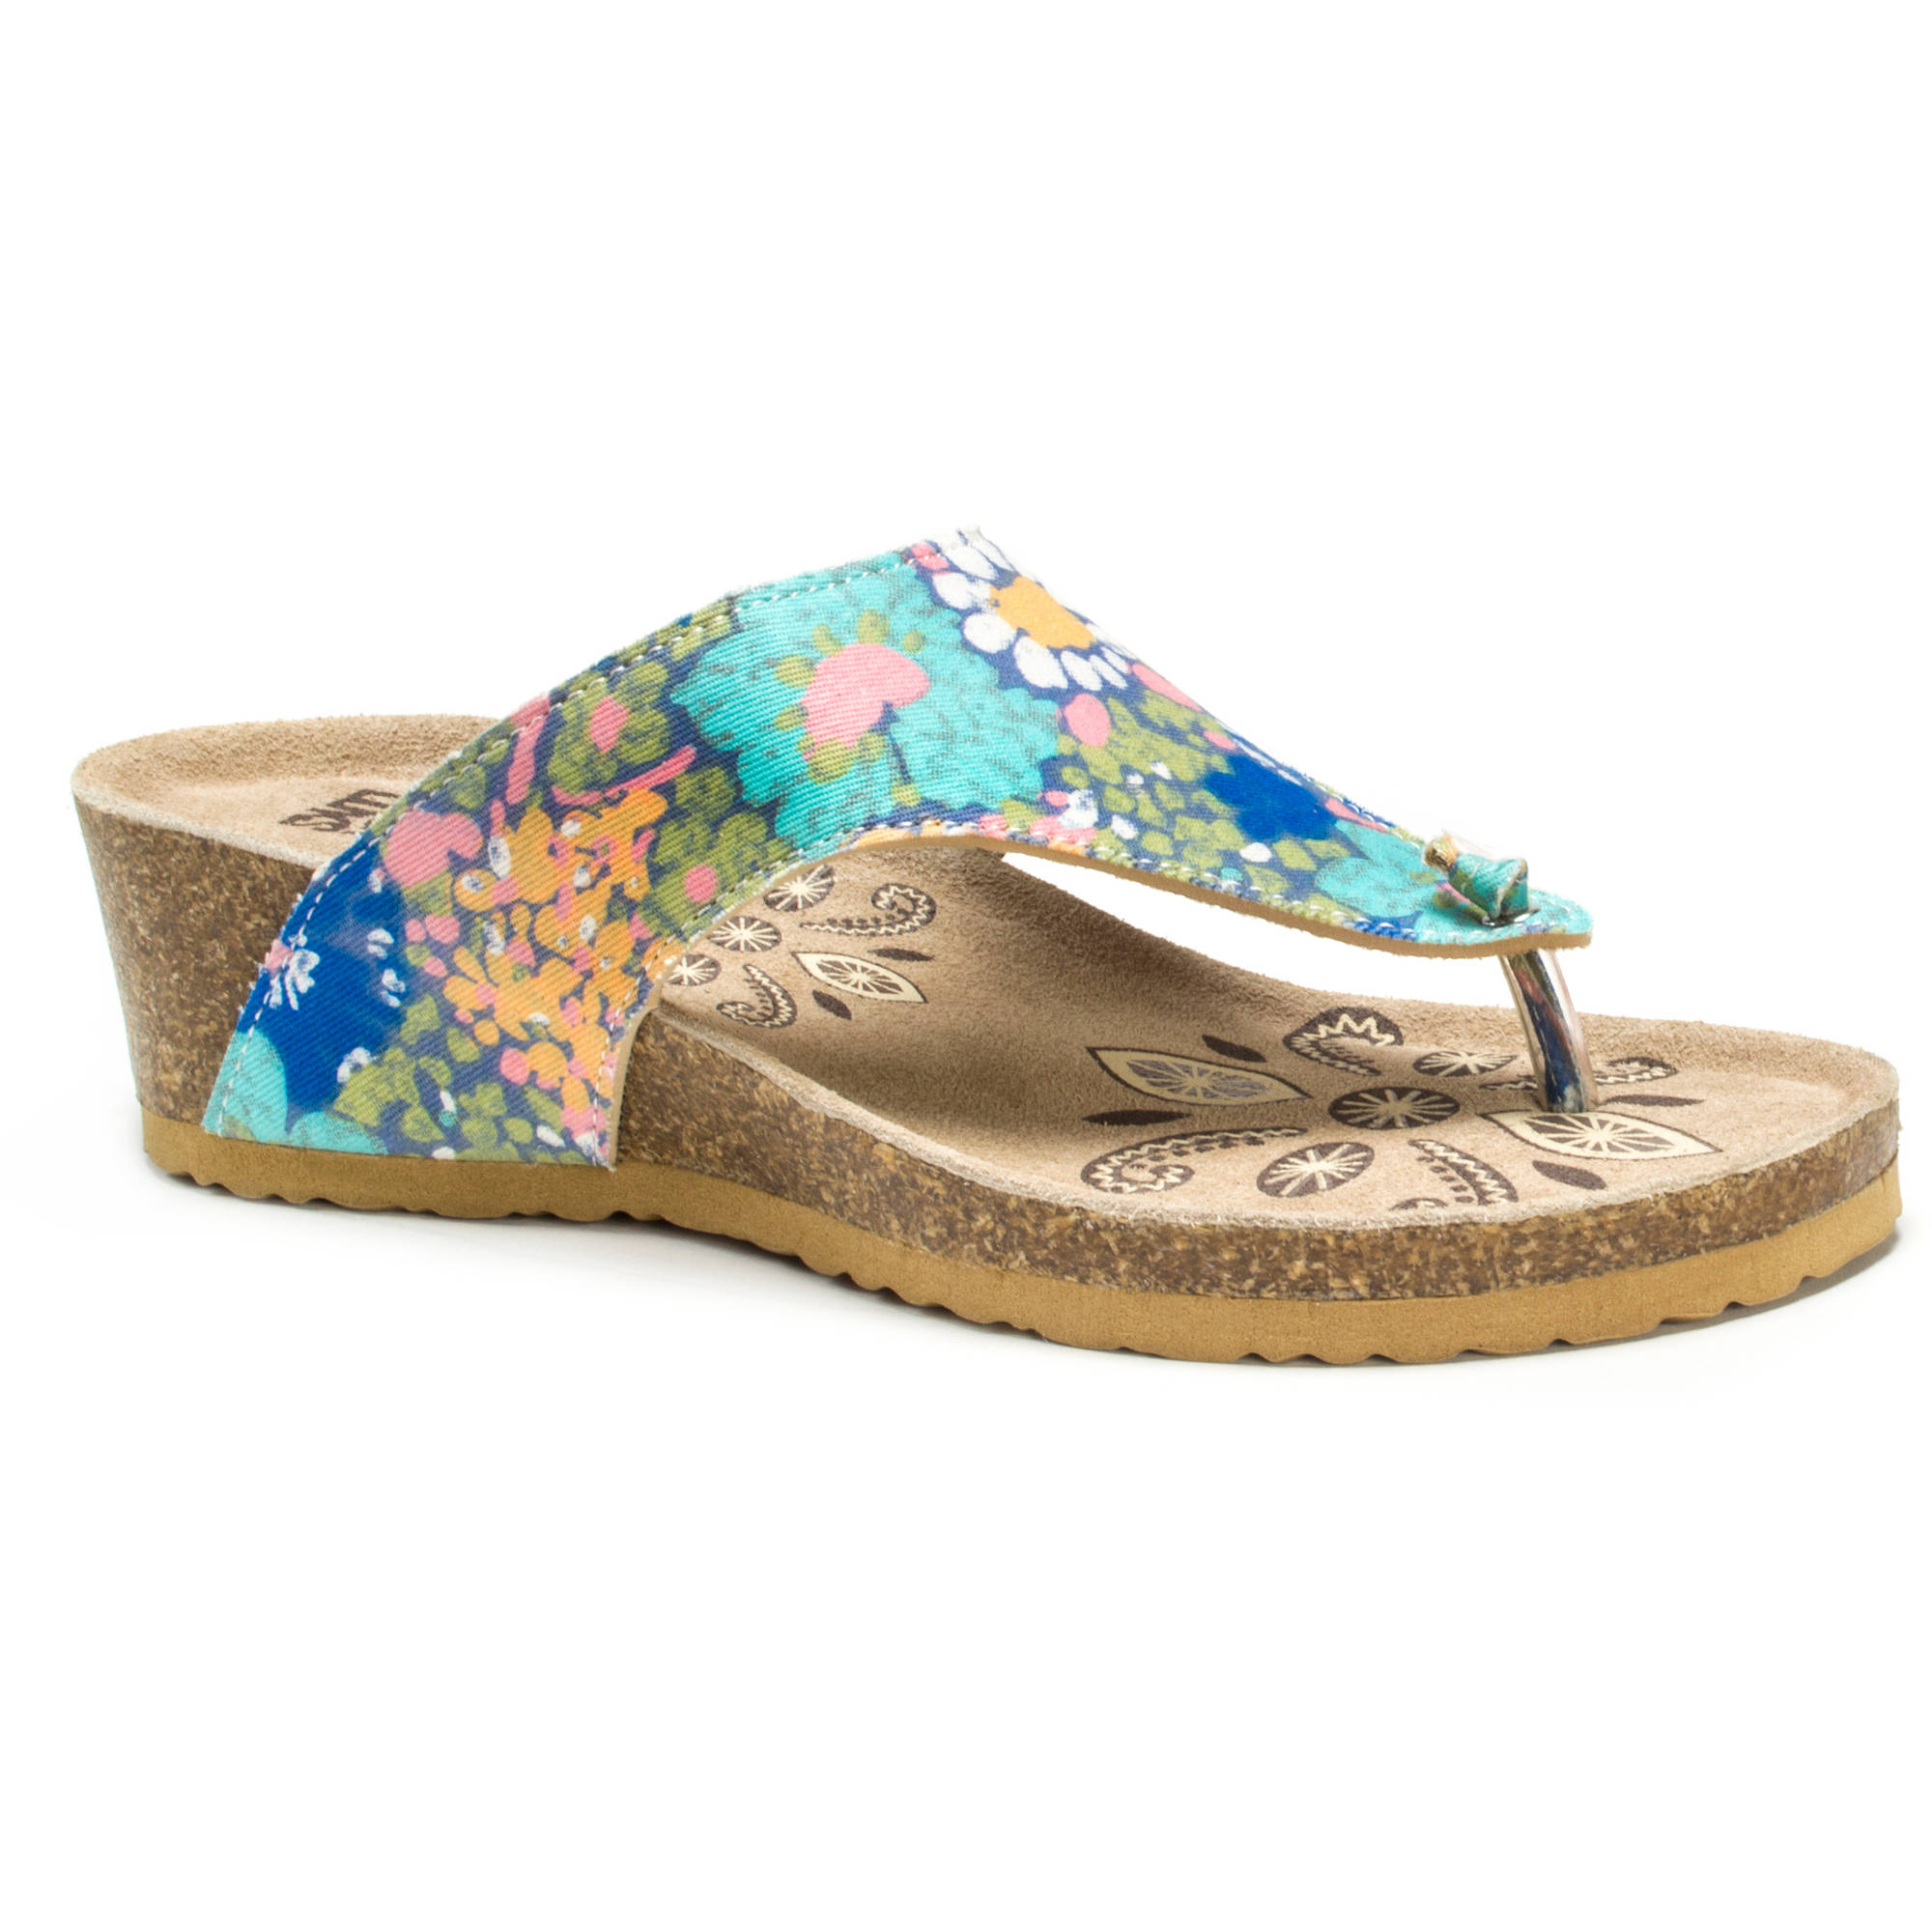 MUK LUKS Women's Sue Ellen Wedge Sandals